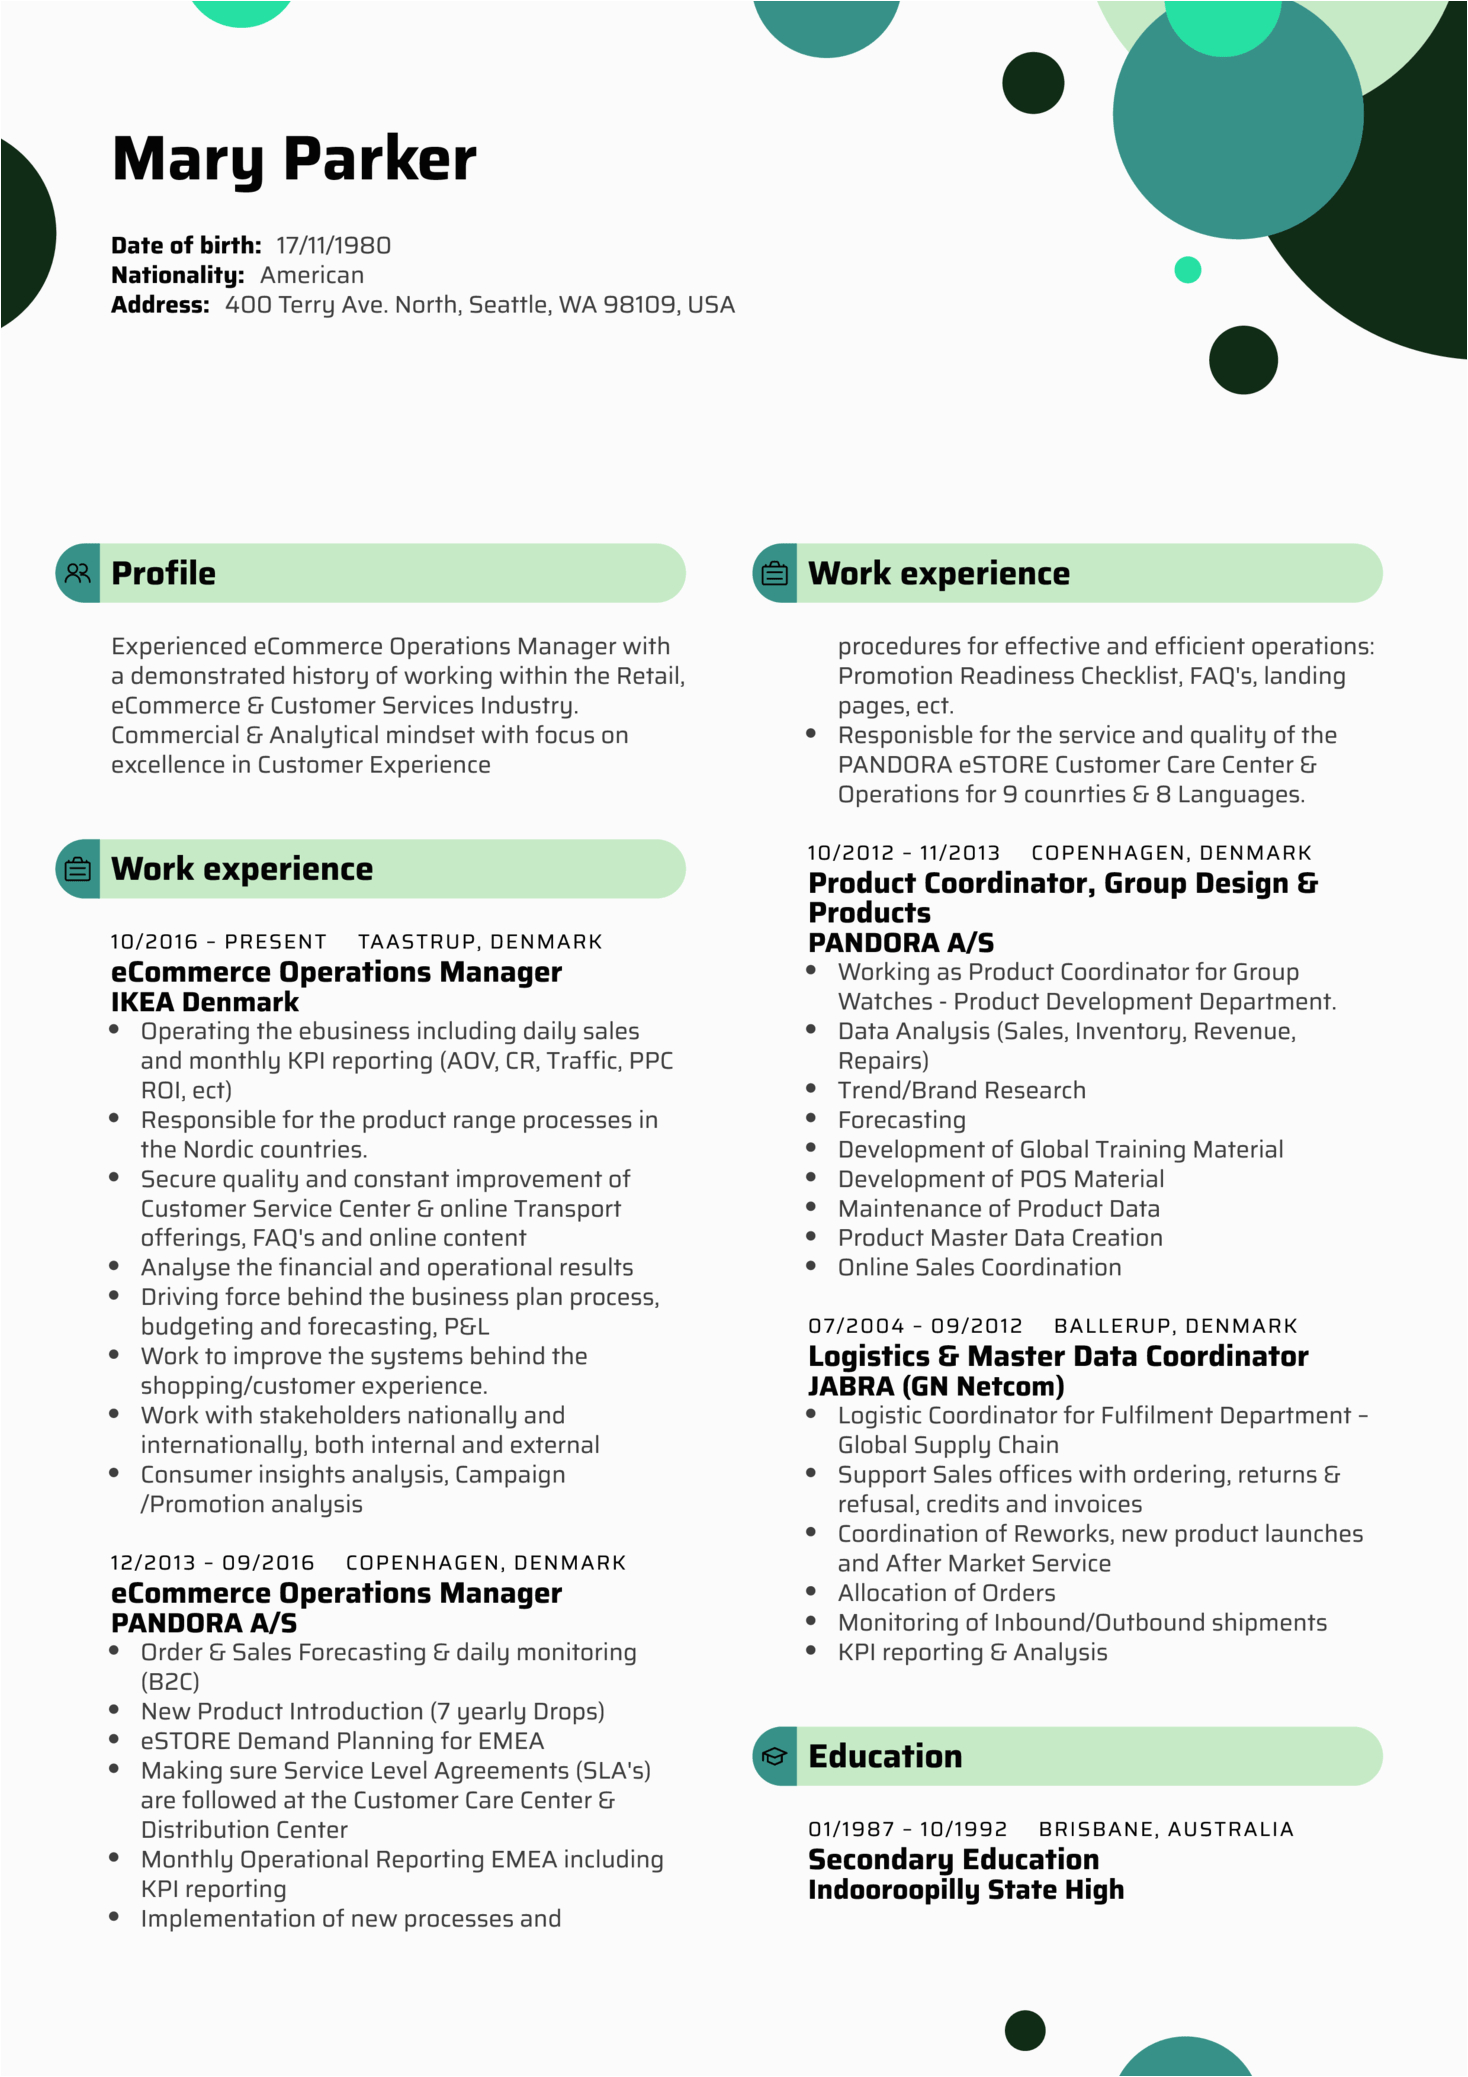 Sample Resume for Ecommerce Operations Manager Resume Examples by Real People Ikea E Merce Operations